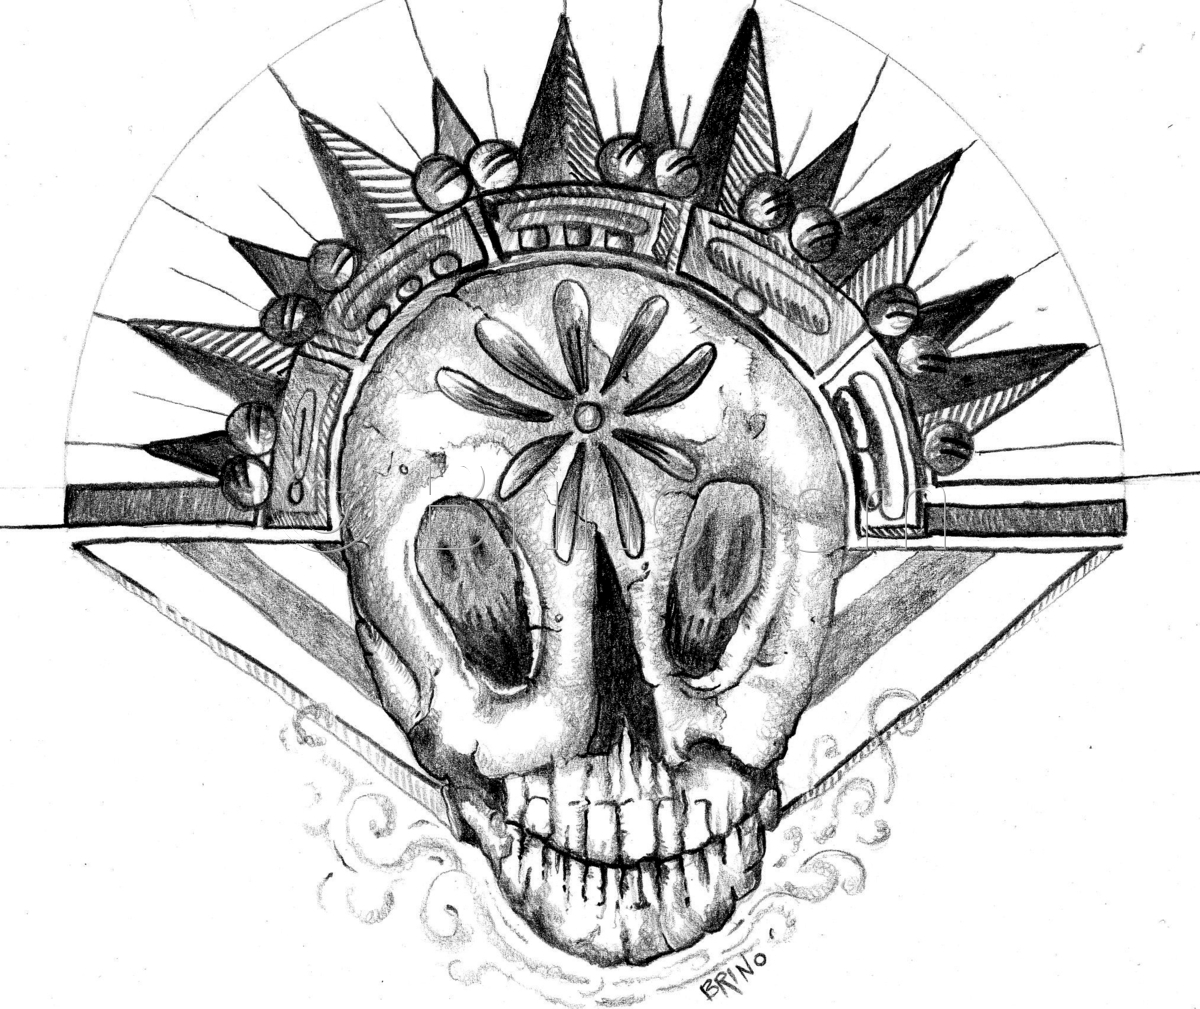 Lowrider Skull (large view)